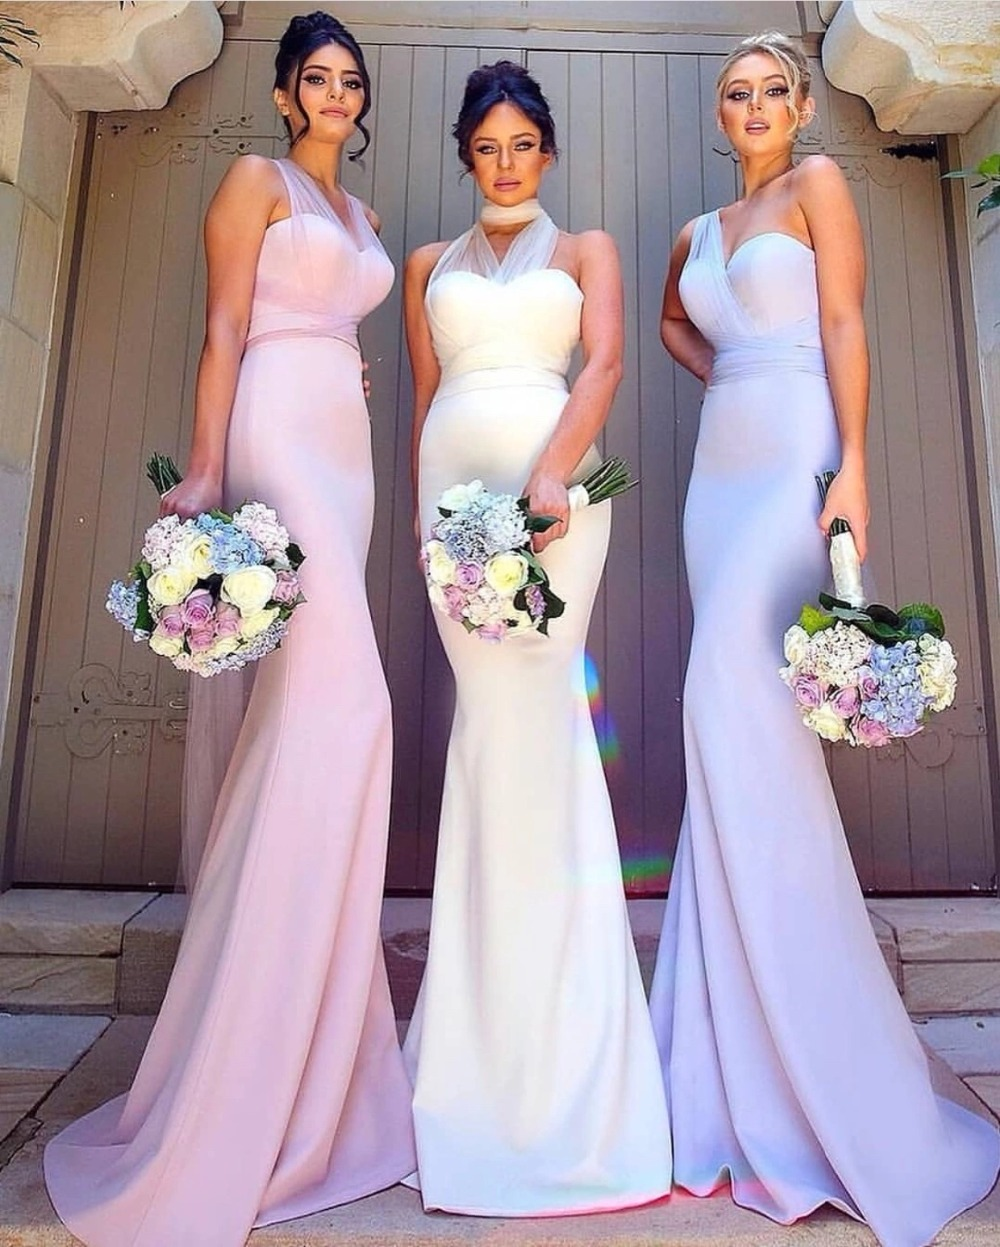 Mermaid Style Wedding Gowns: 2019 New Pink Bridesmaid Dress Long Gowns Mixed Style